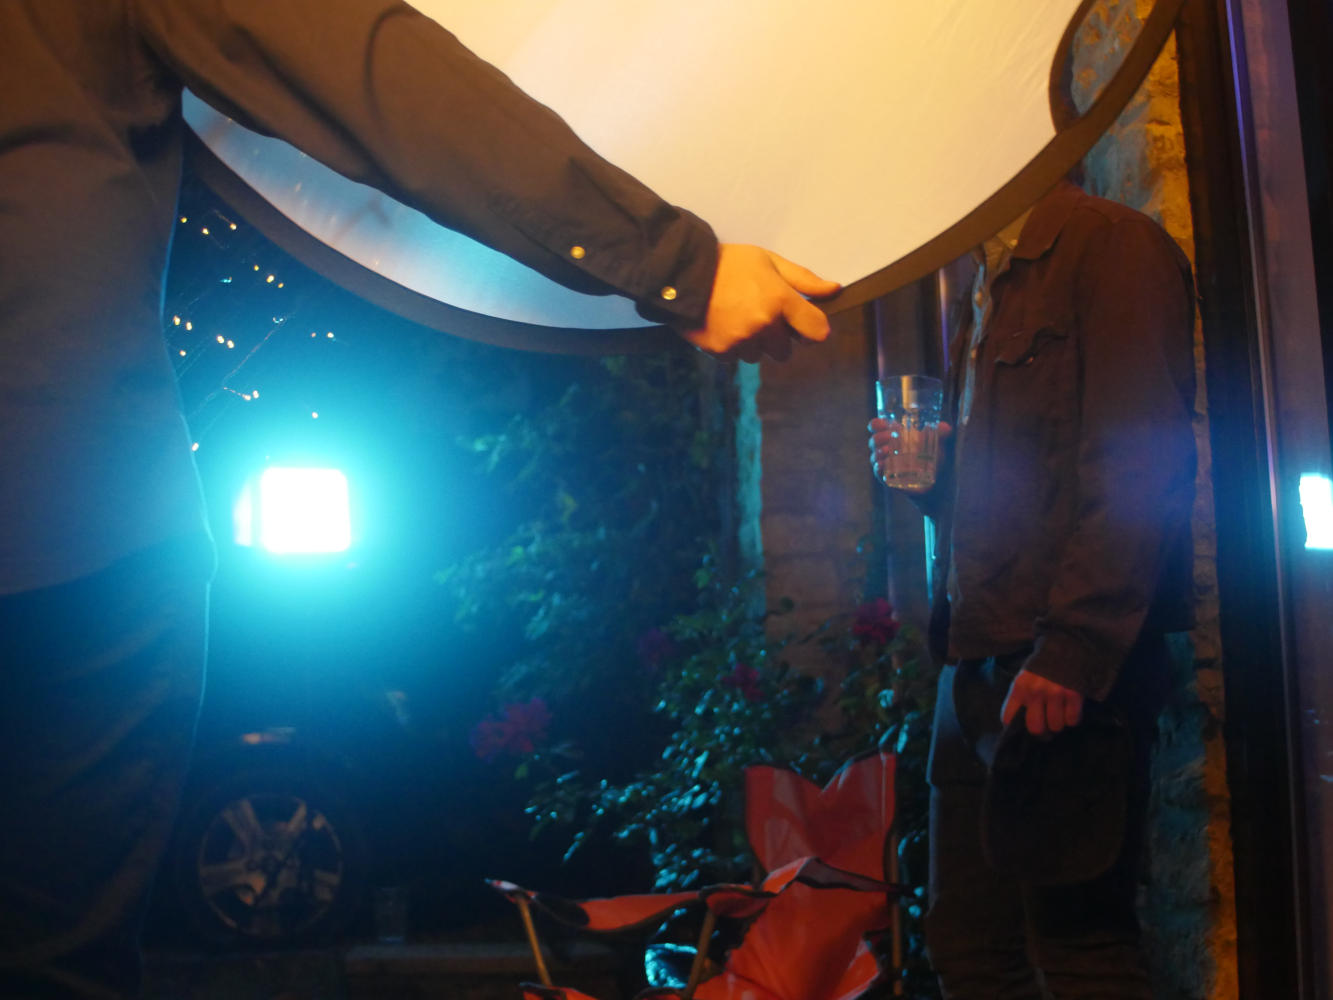 Behind the scenes image from short film Robyn showing a 5-in-1 reflector diffusing a light